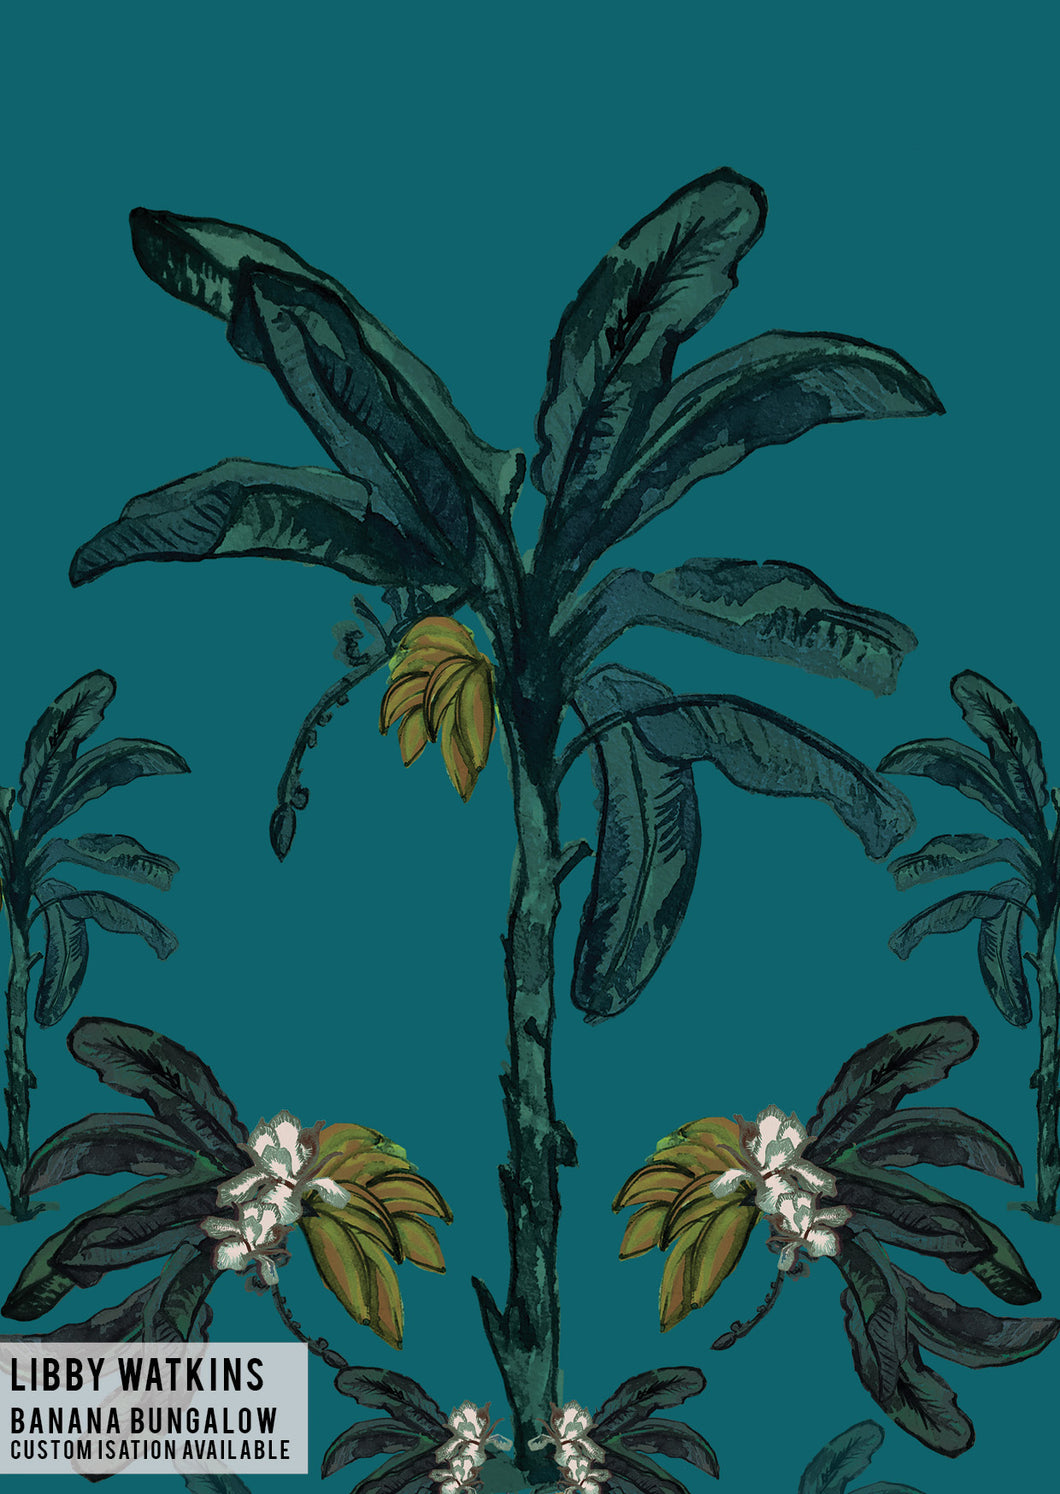 Banana Bungalow Wallpaper